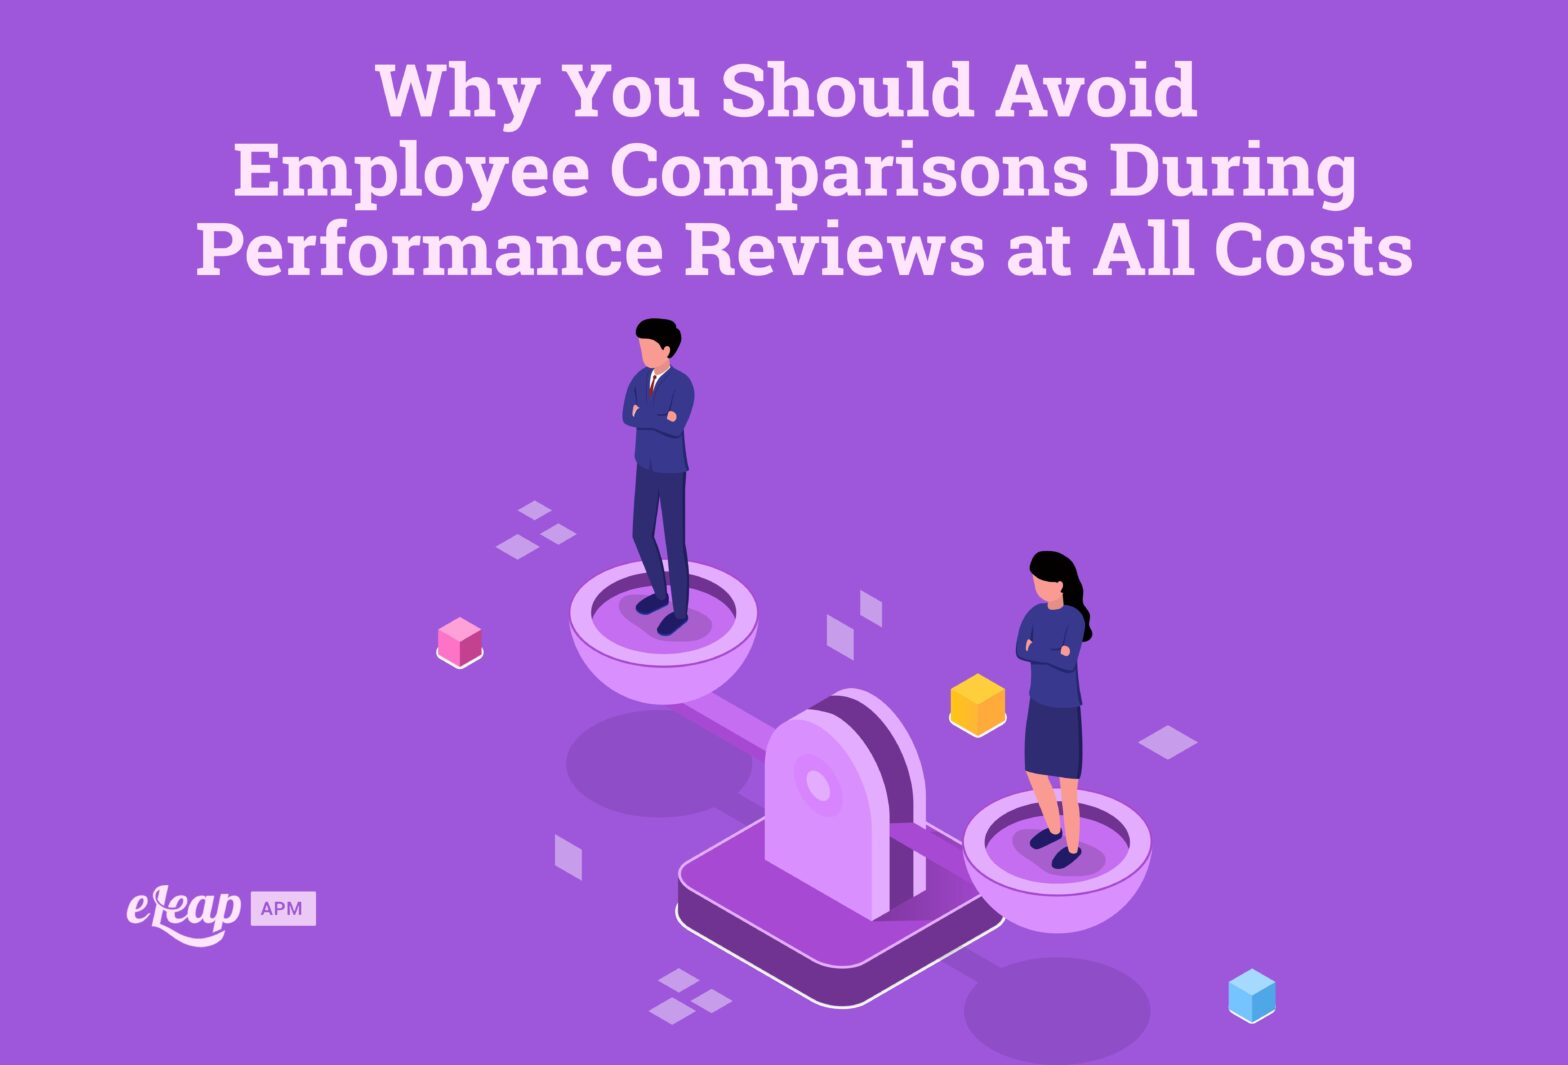 Why You Should Avoid Employee Comparisons During Performance Reviews at All Costs